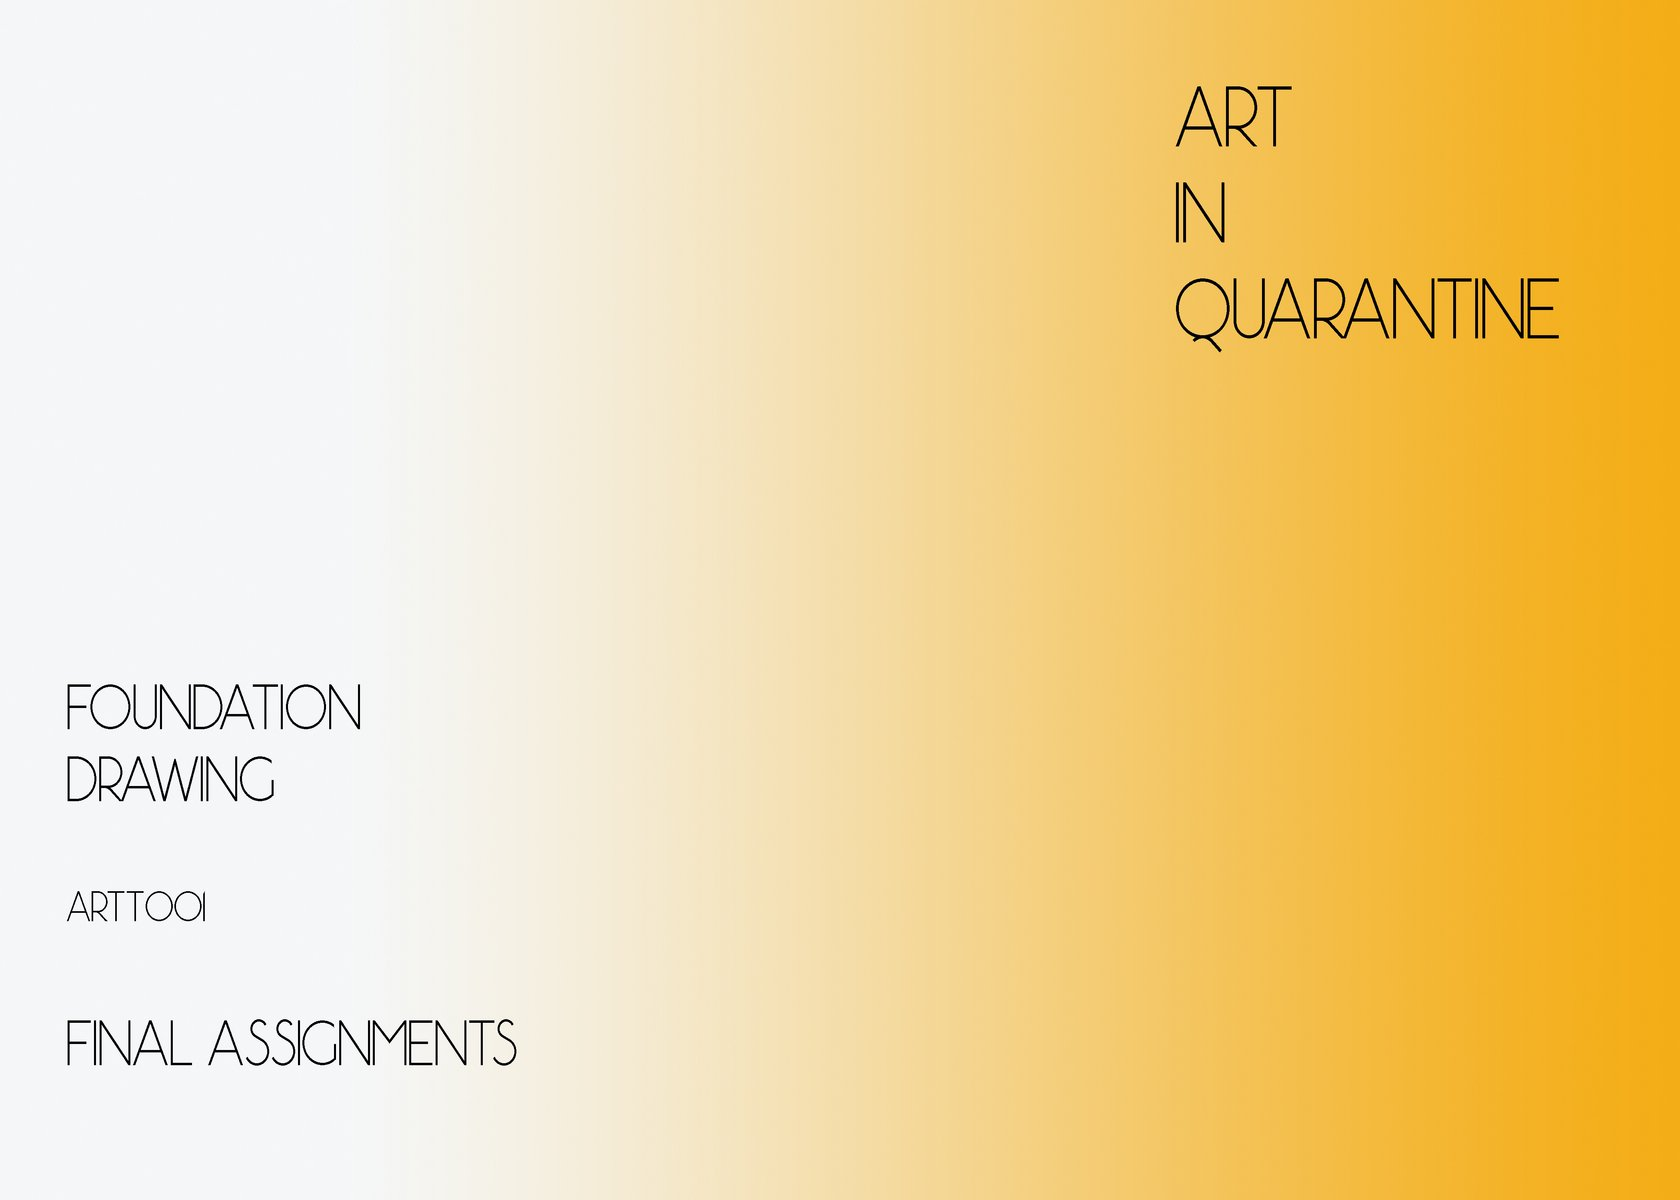 Foundation Drawing, Spring 2020, Art in Quarantine catalog